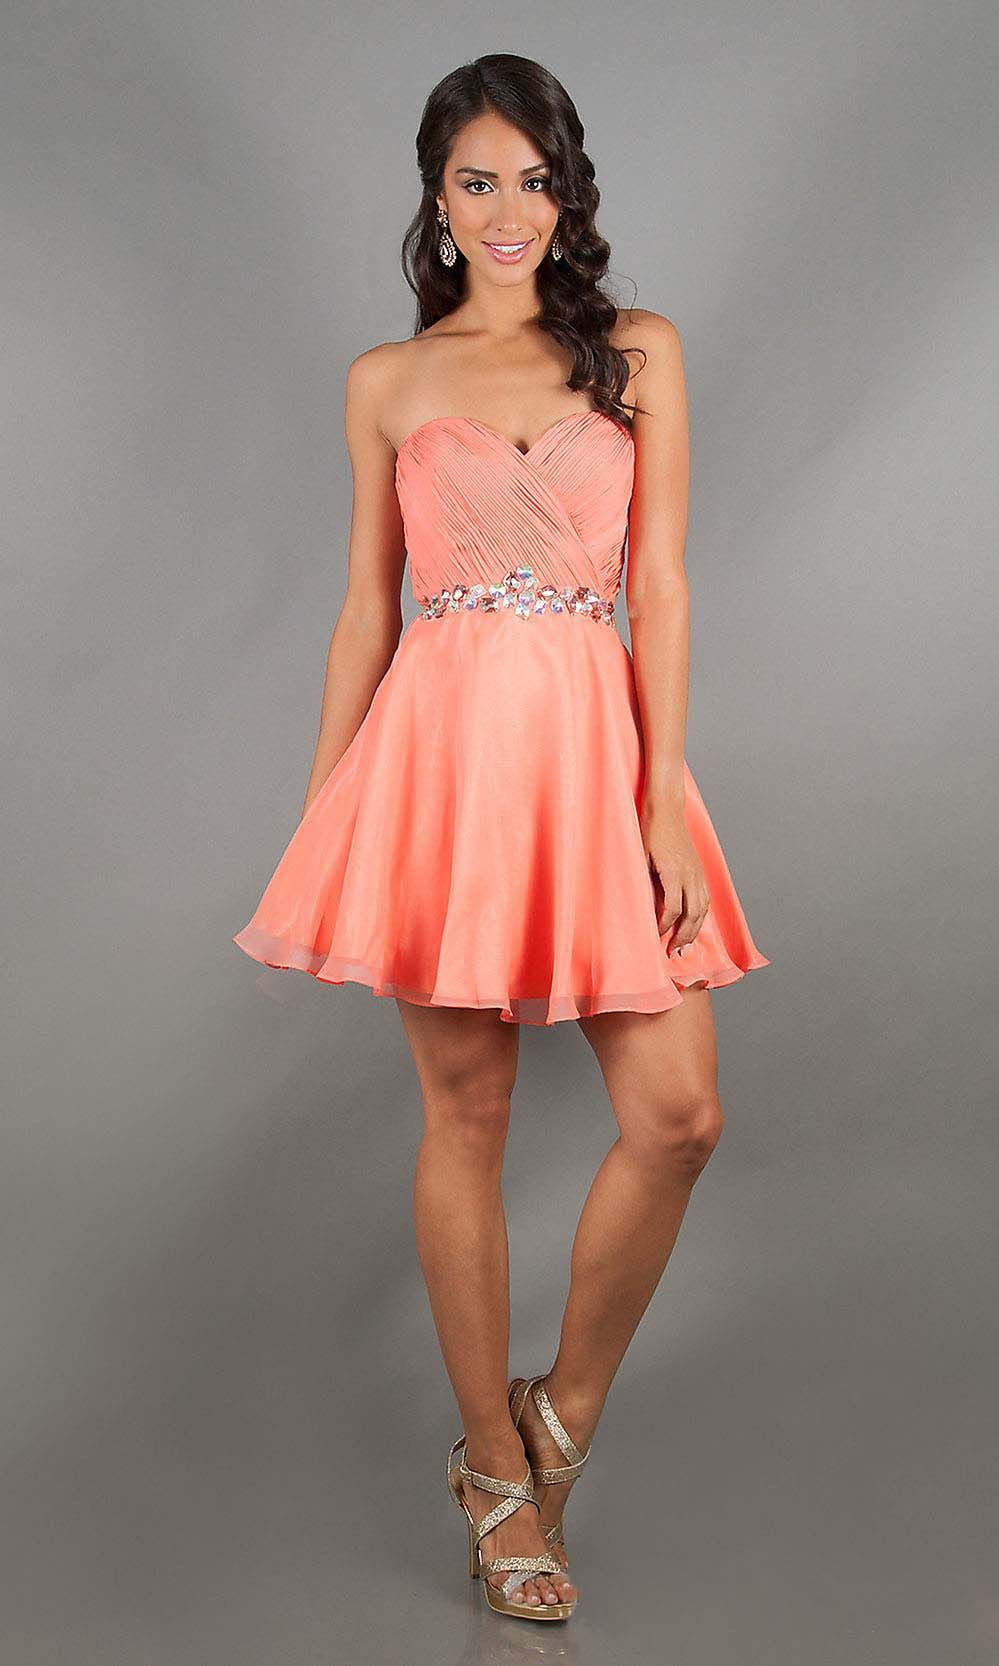 junior cocktail dresses, sexy cocktail dresses, coral prom dresses ...